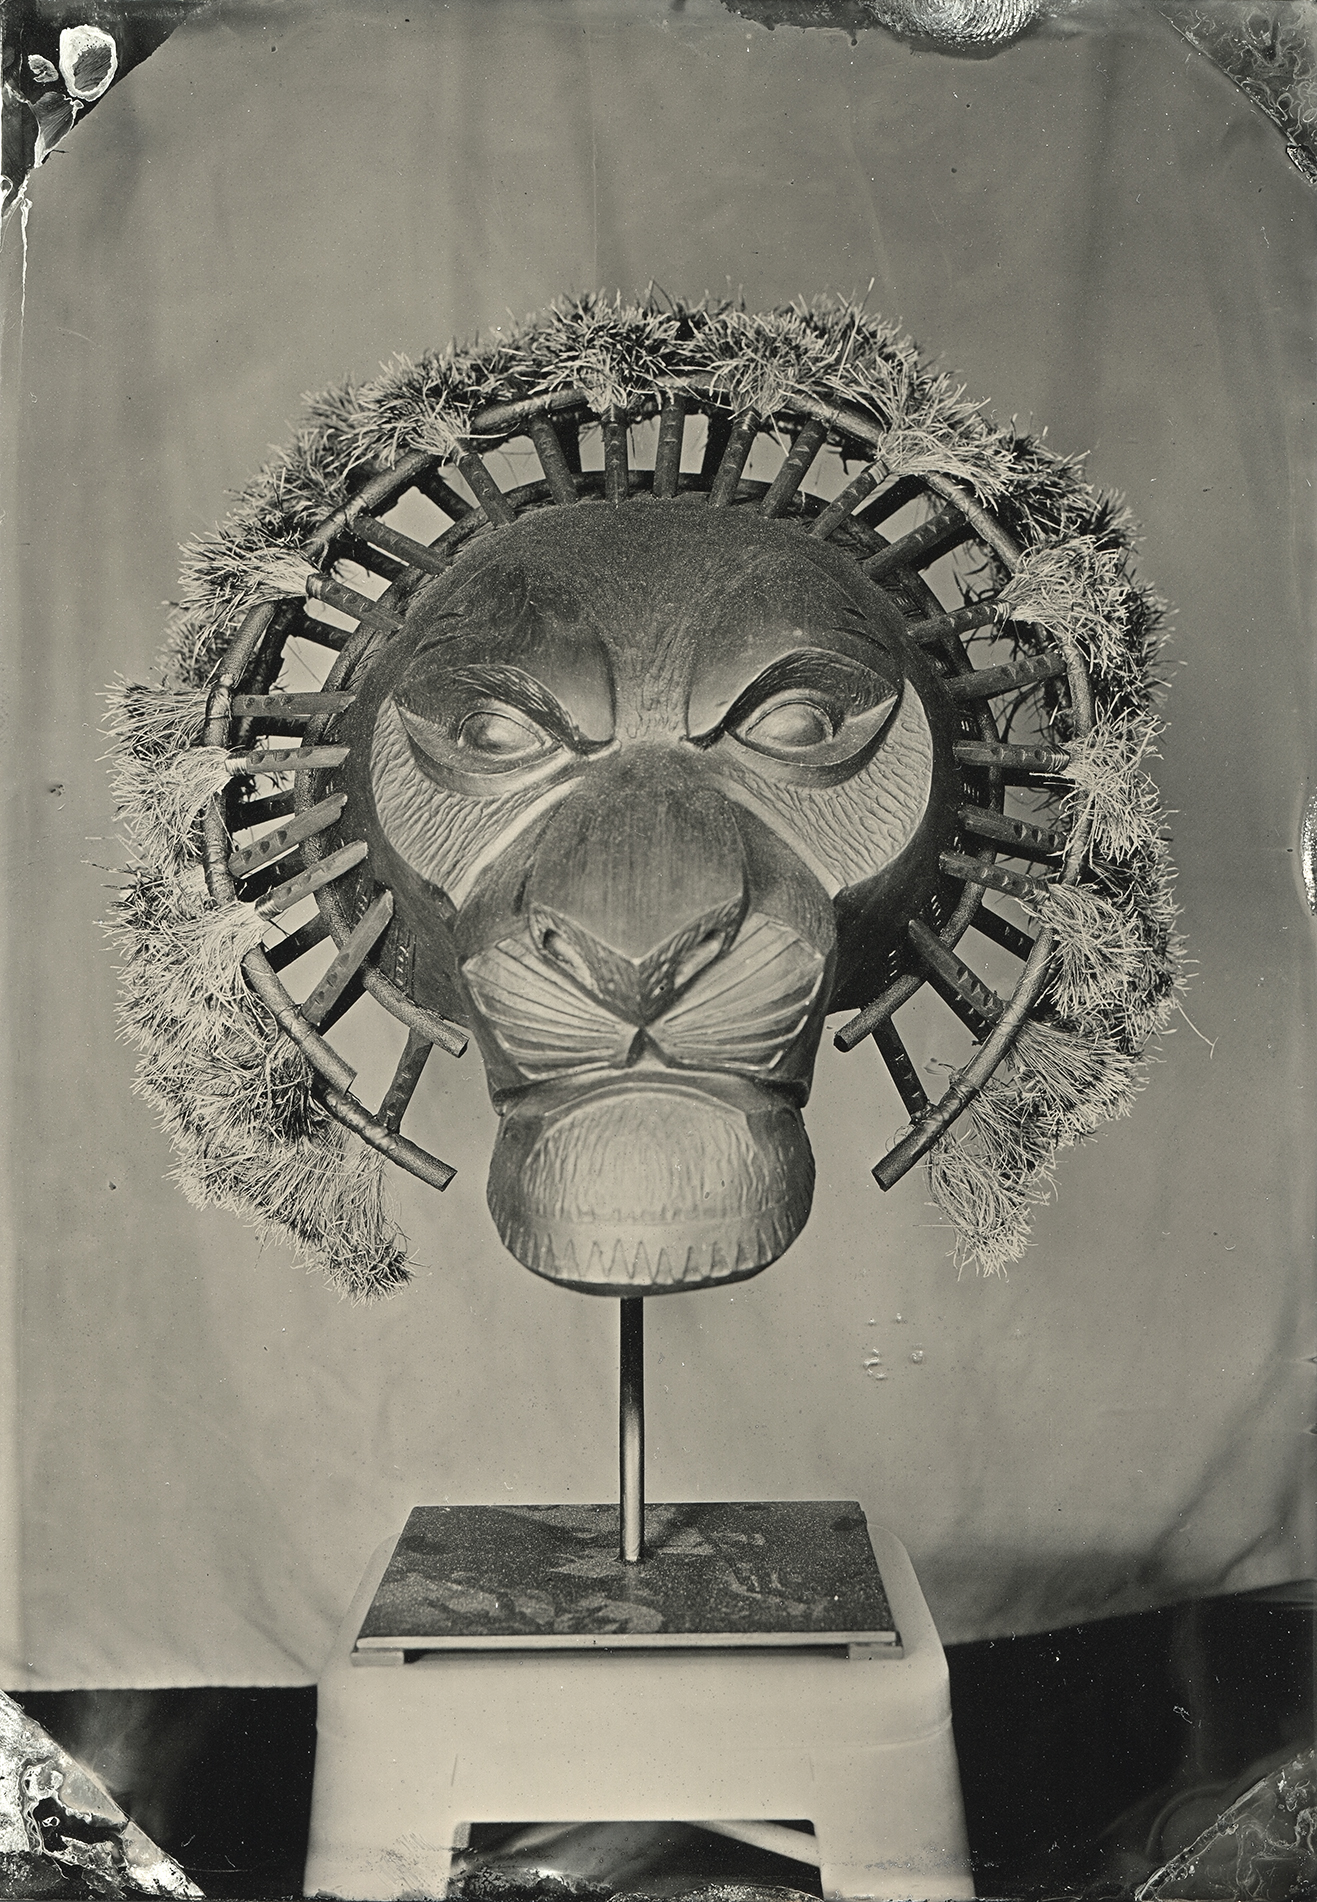 Mask from the lion king